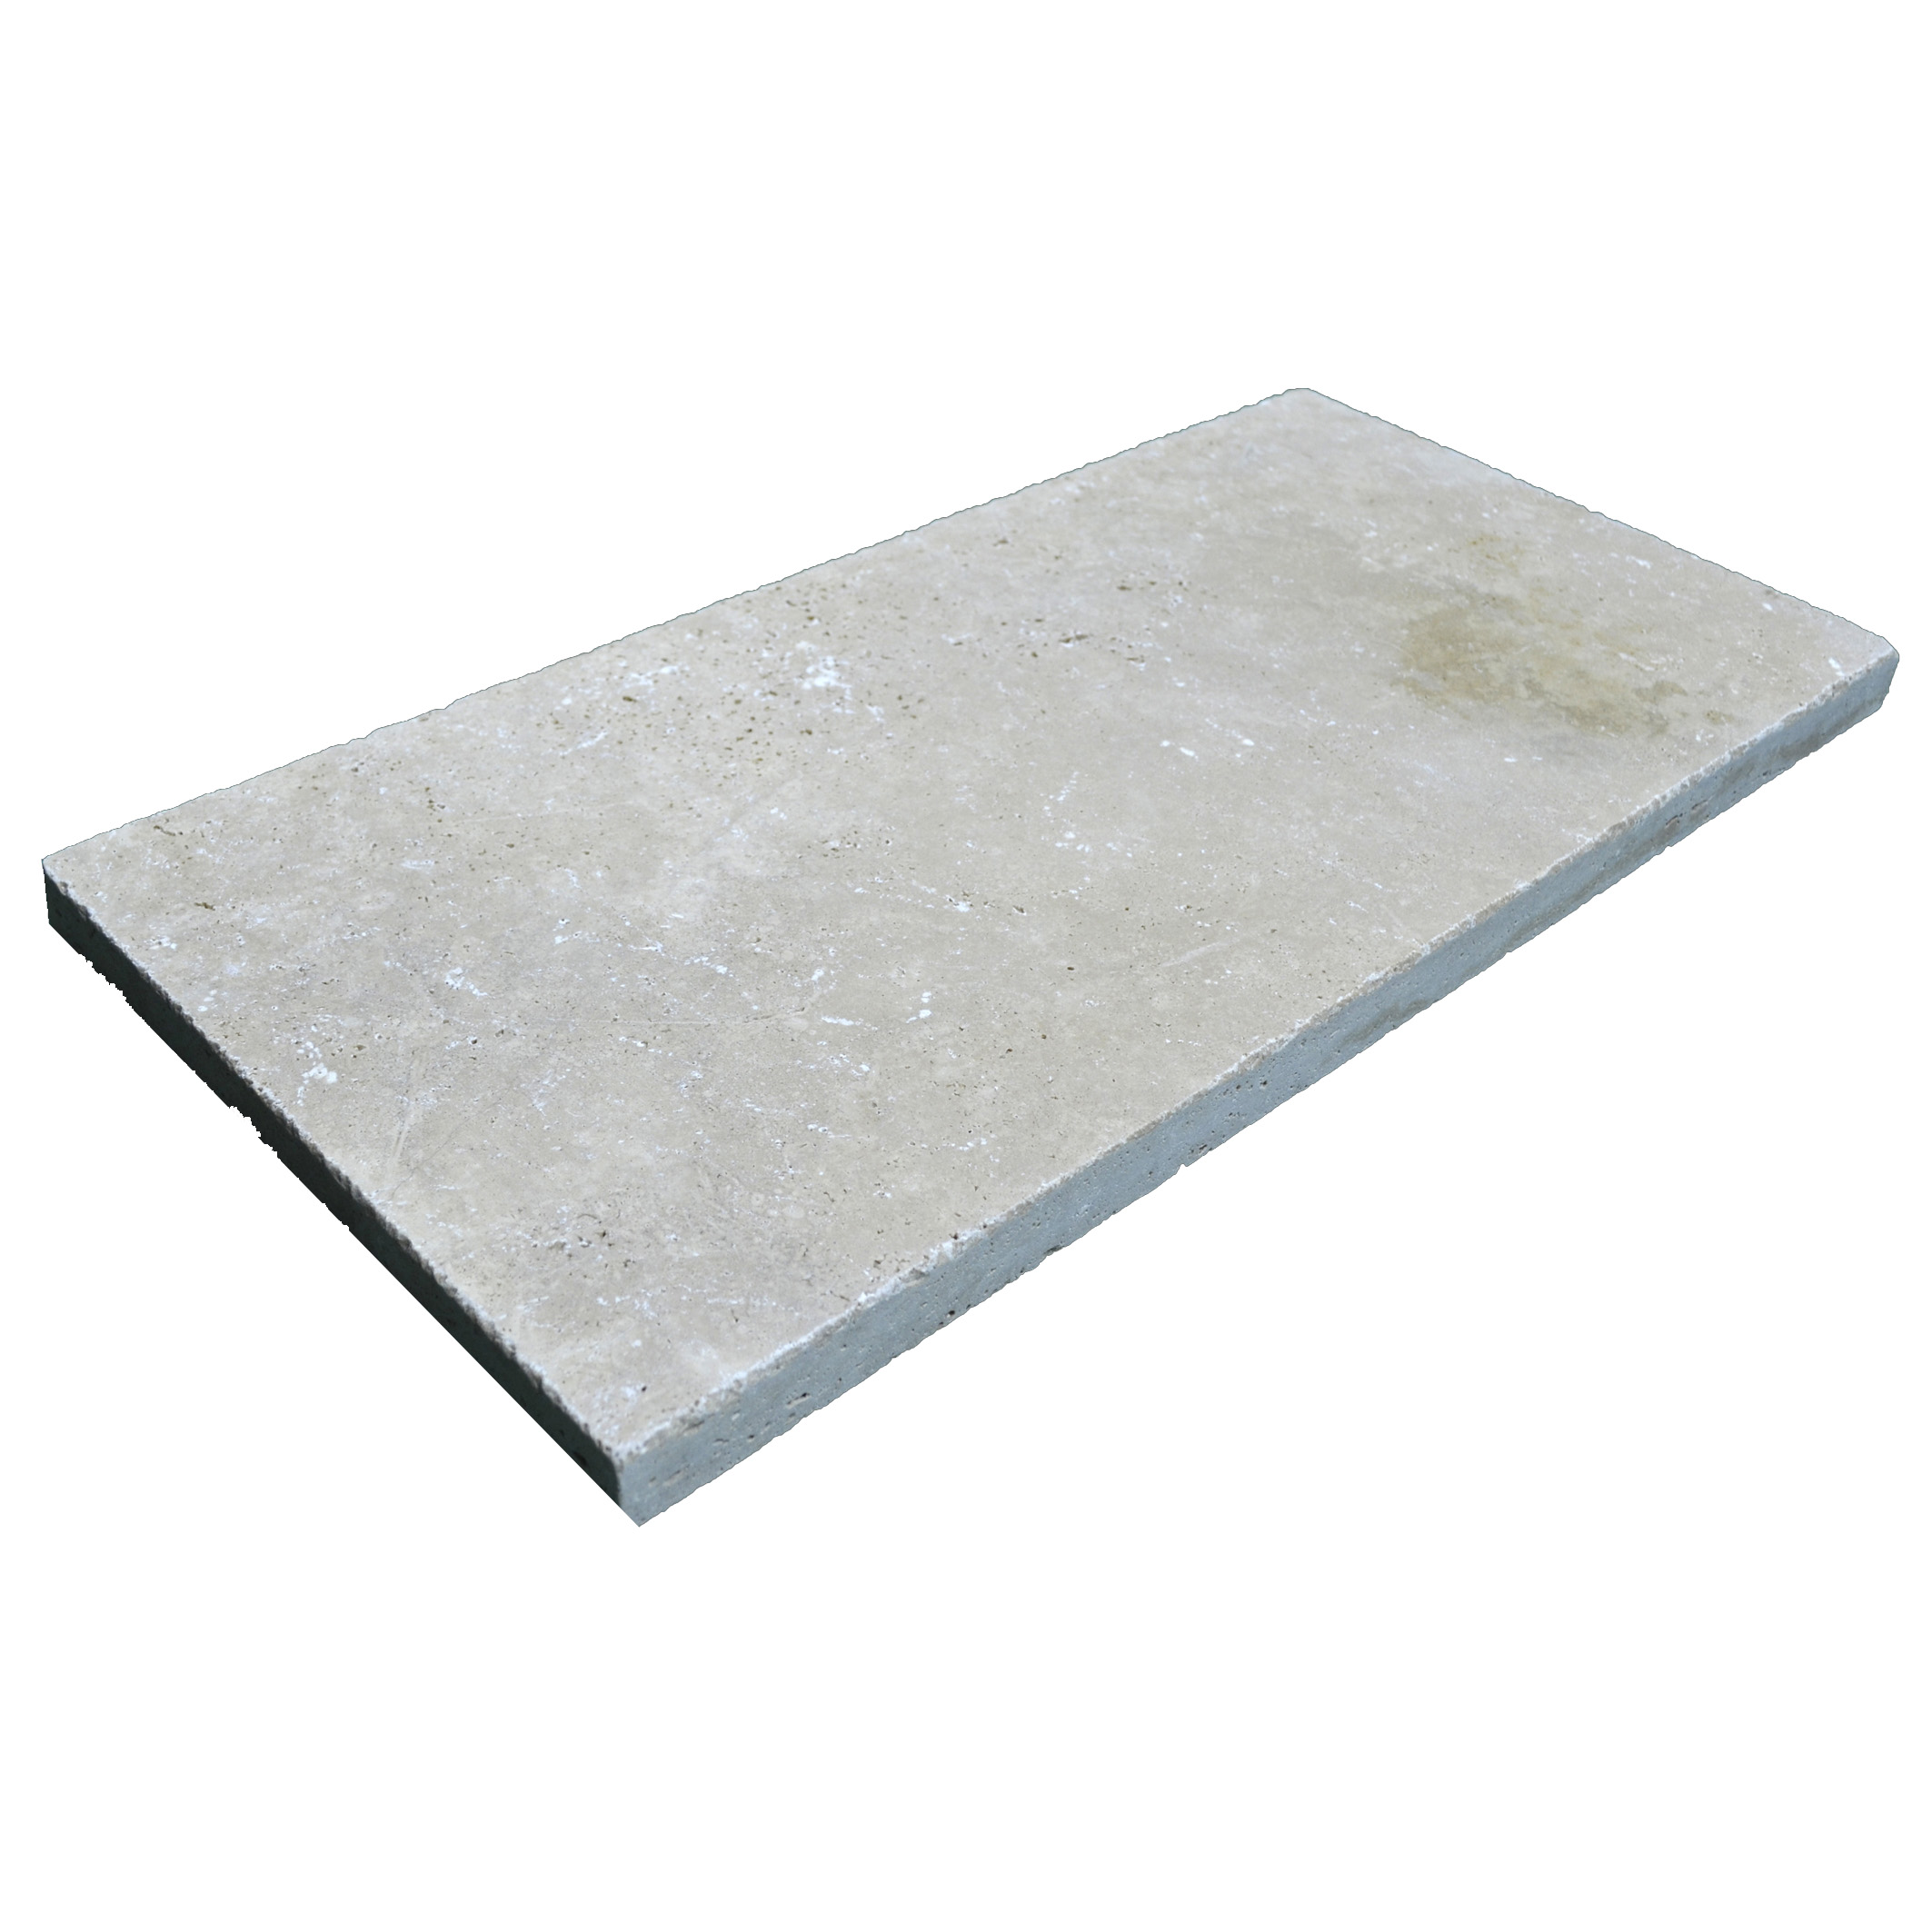 Super Light Tumbled Travertine Pavers 12x24-pavers sale-Atlantic Stone Source